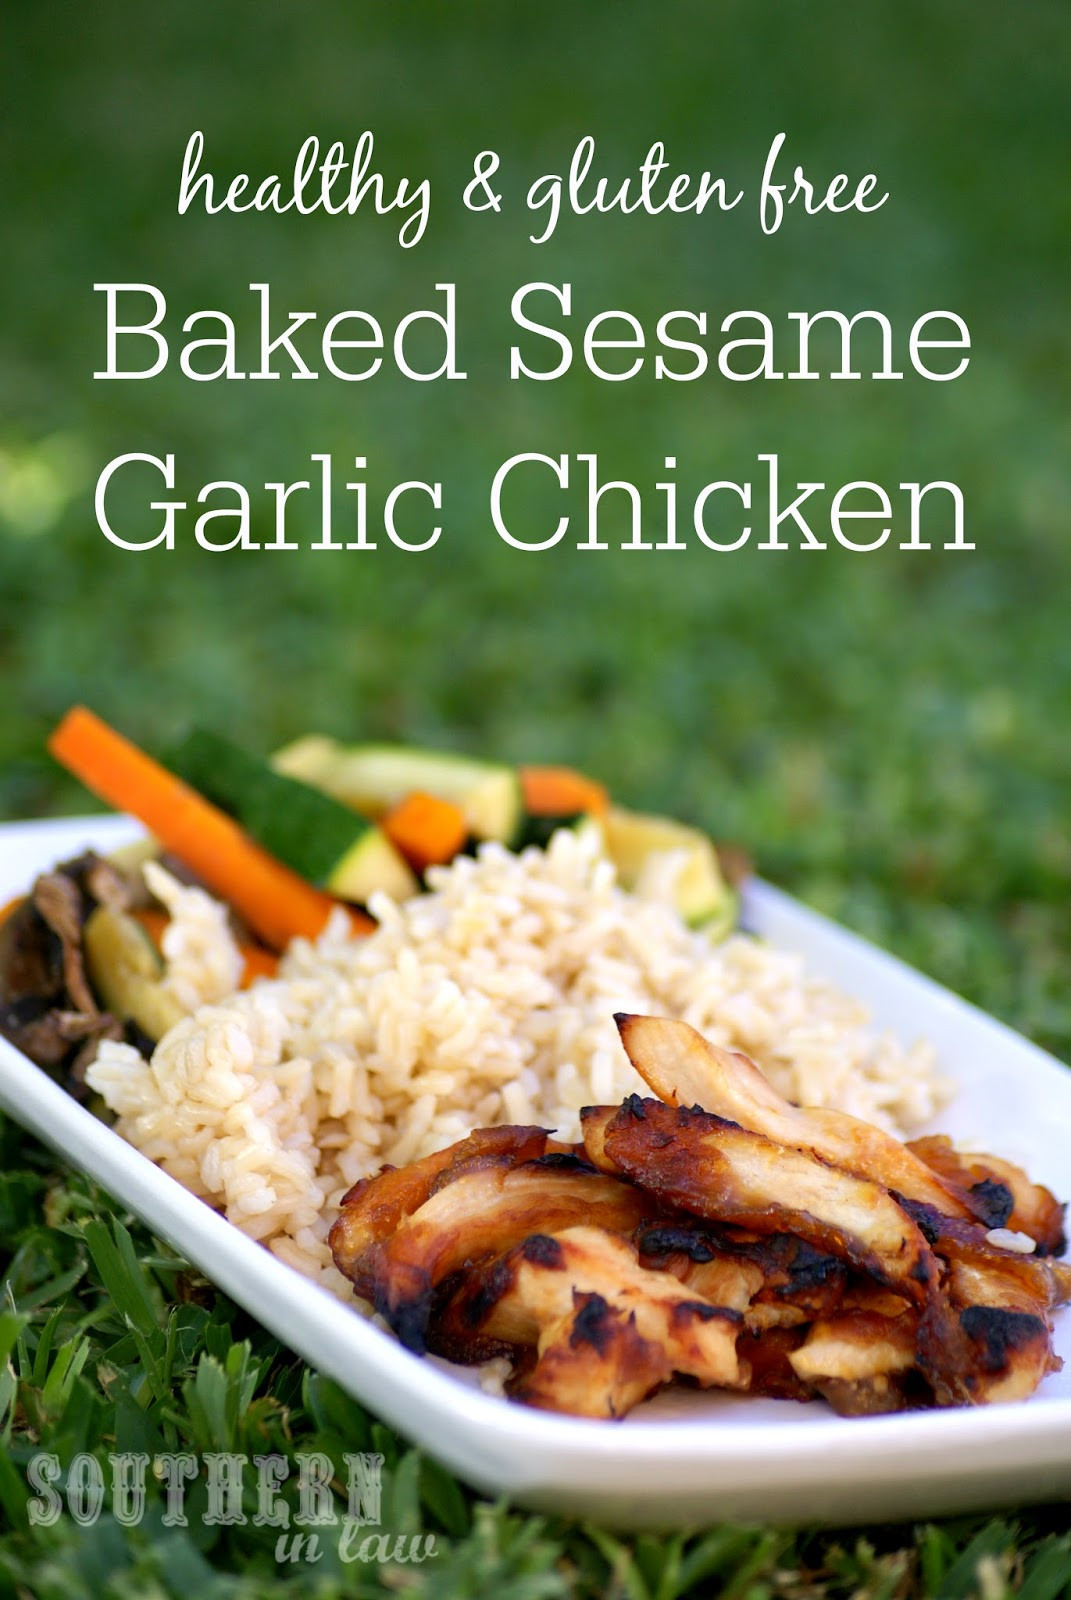 Healthy Low Fat Chicken Recipes  Southern In Law Recipe Healthy Baked Sesame Garlic Chicken